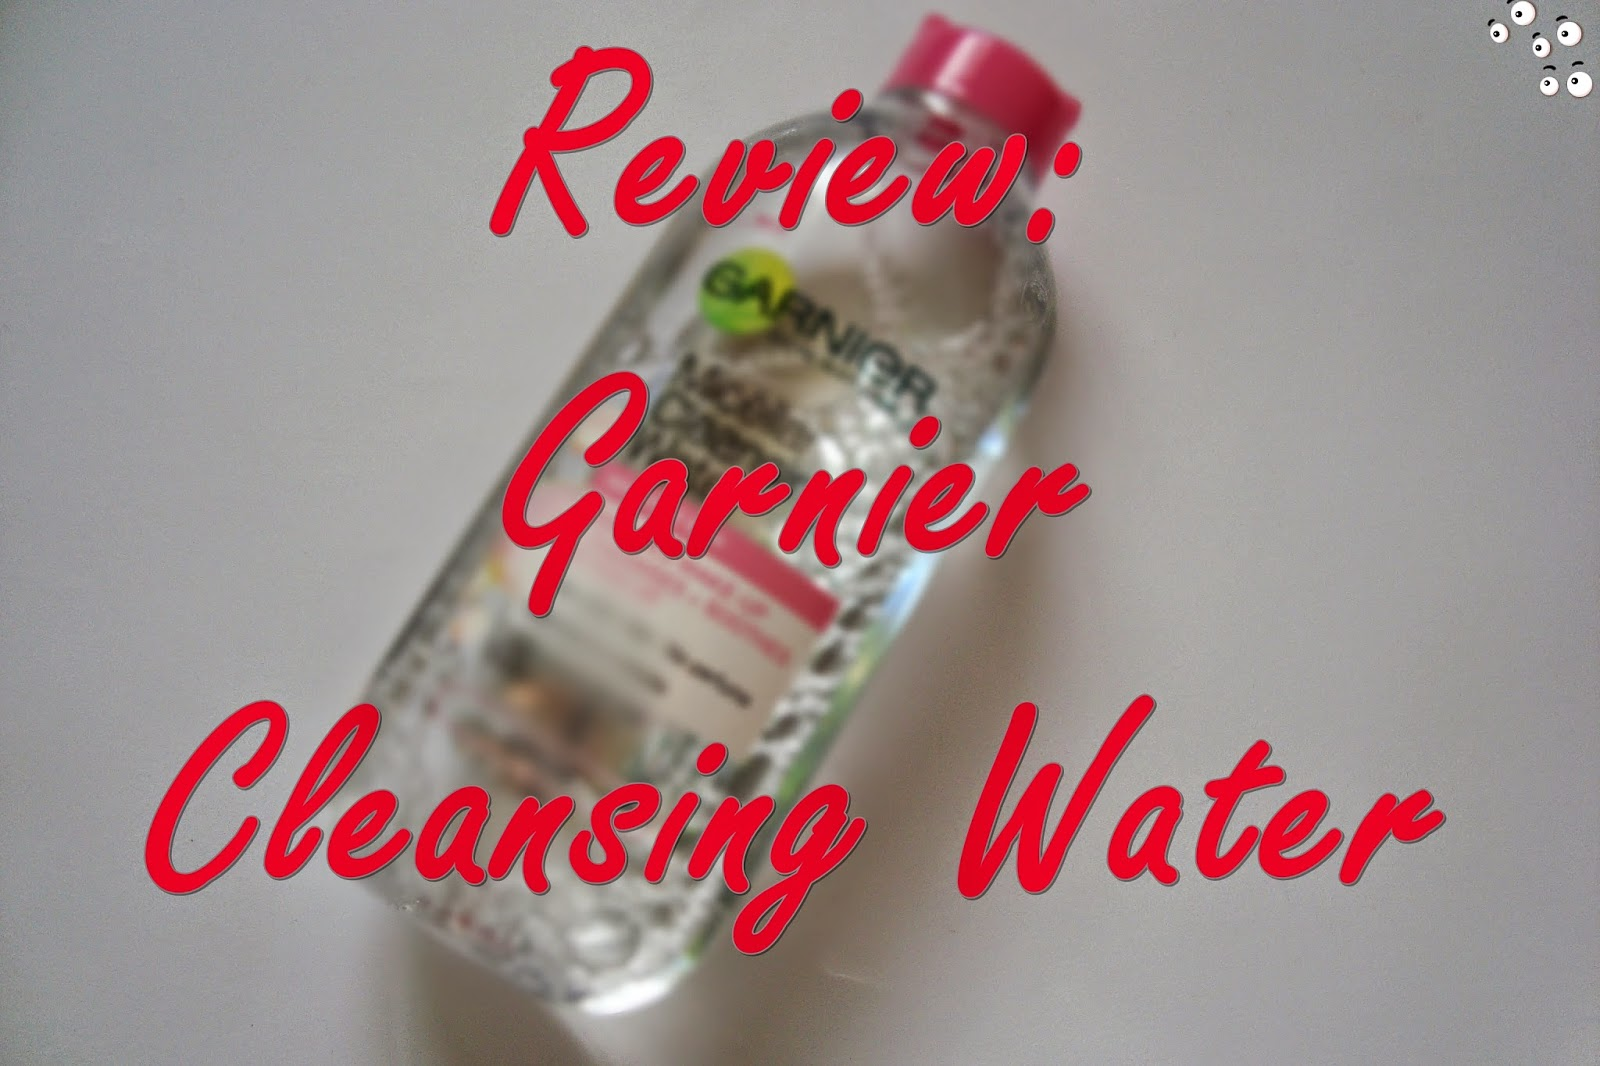 Garnier Cleansing Water review